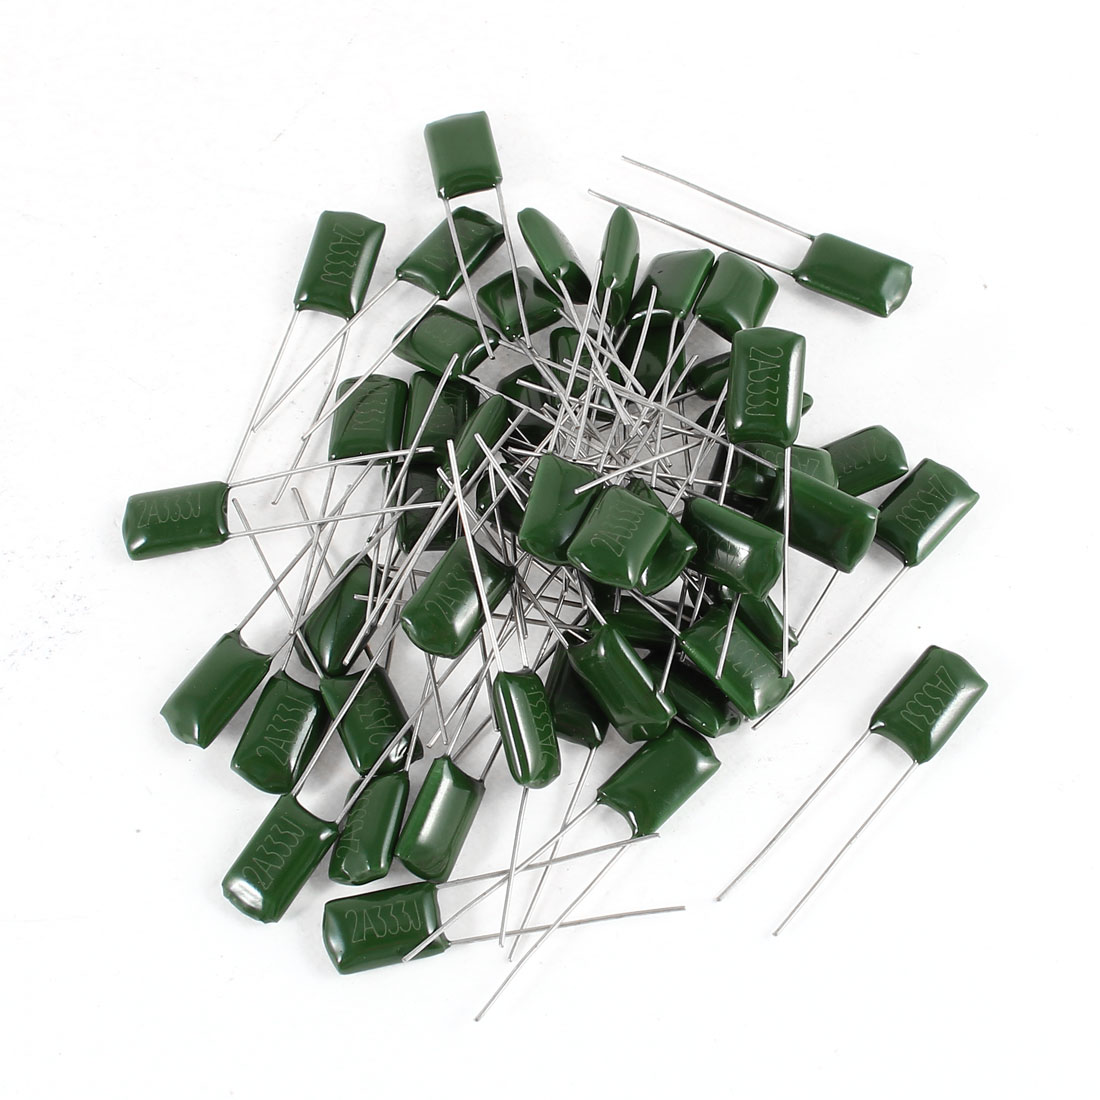 50 Pcs Radial Leads Polyester Film Cap Capacitance Capacitors Green 2A333J 100V 33nF 5%